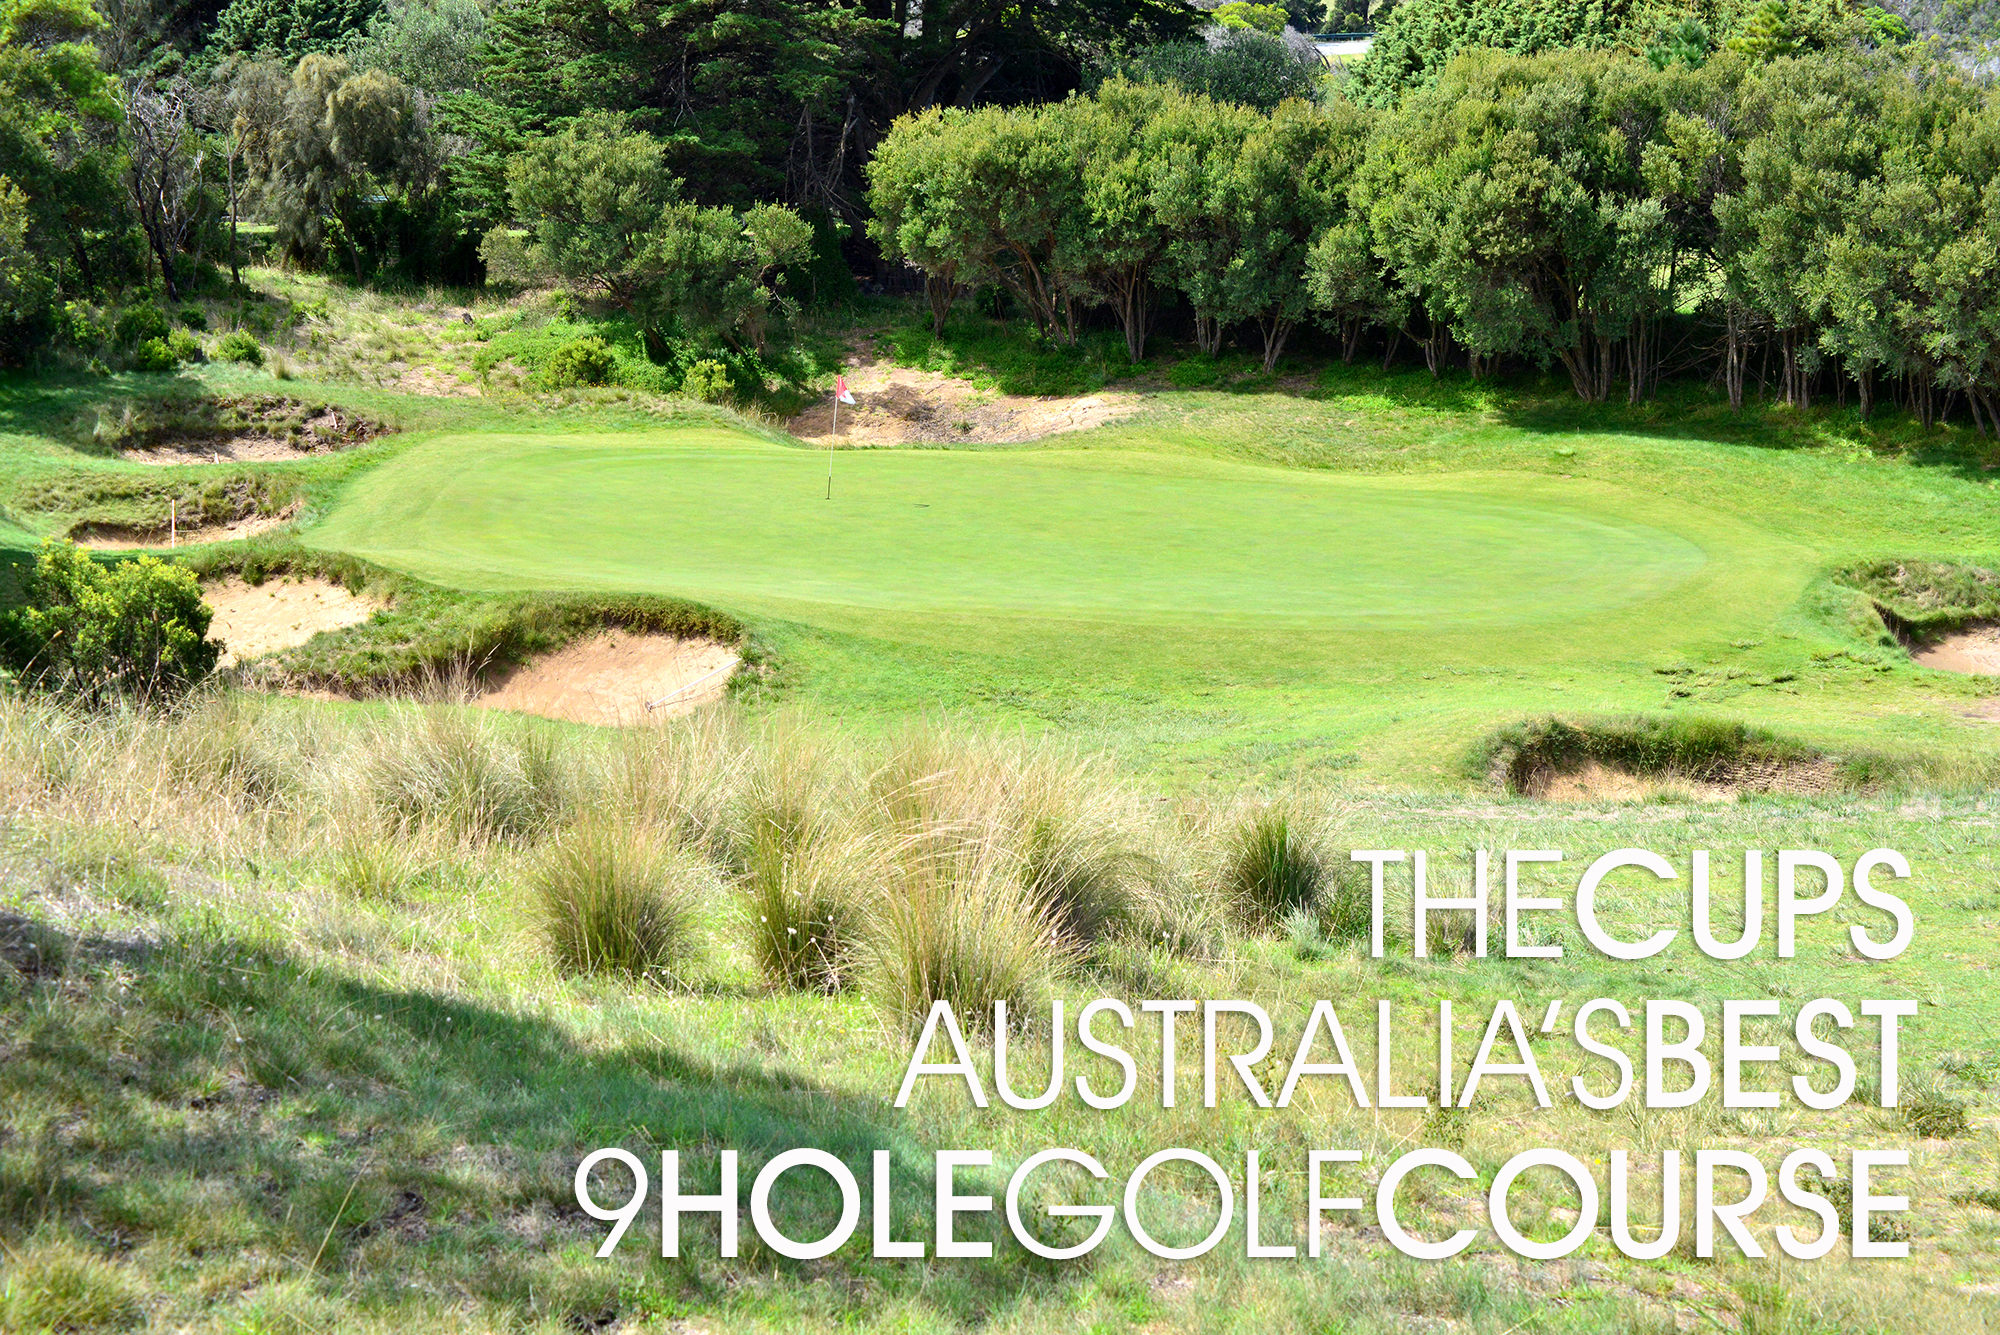 The dunes gold course